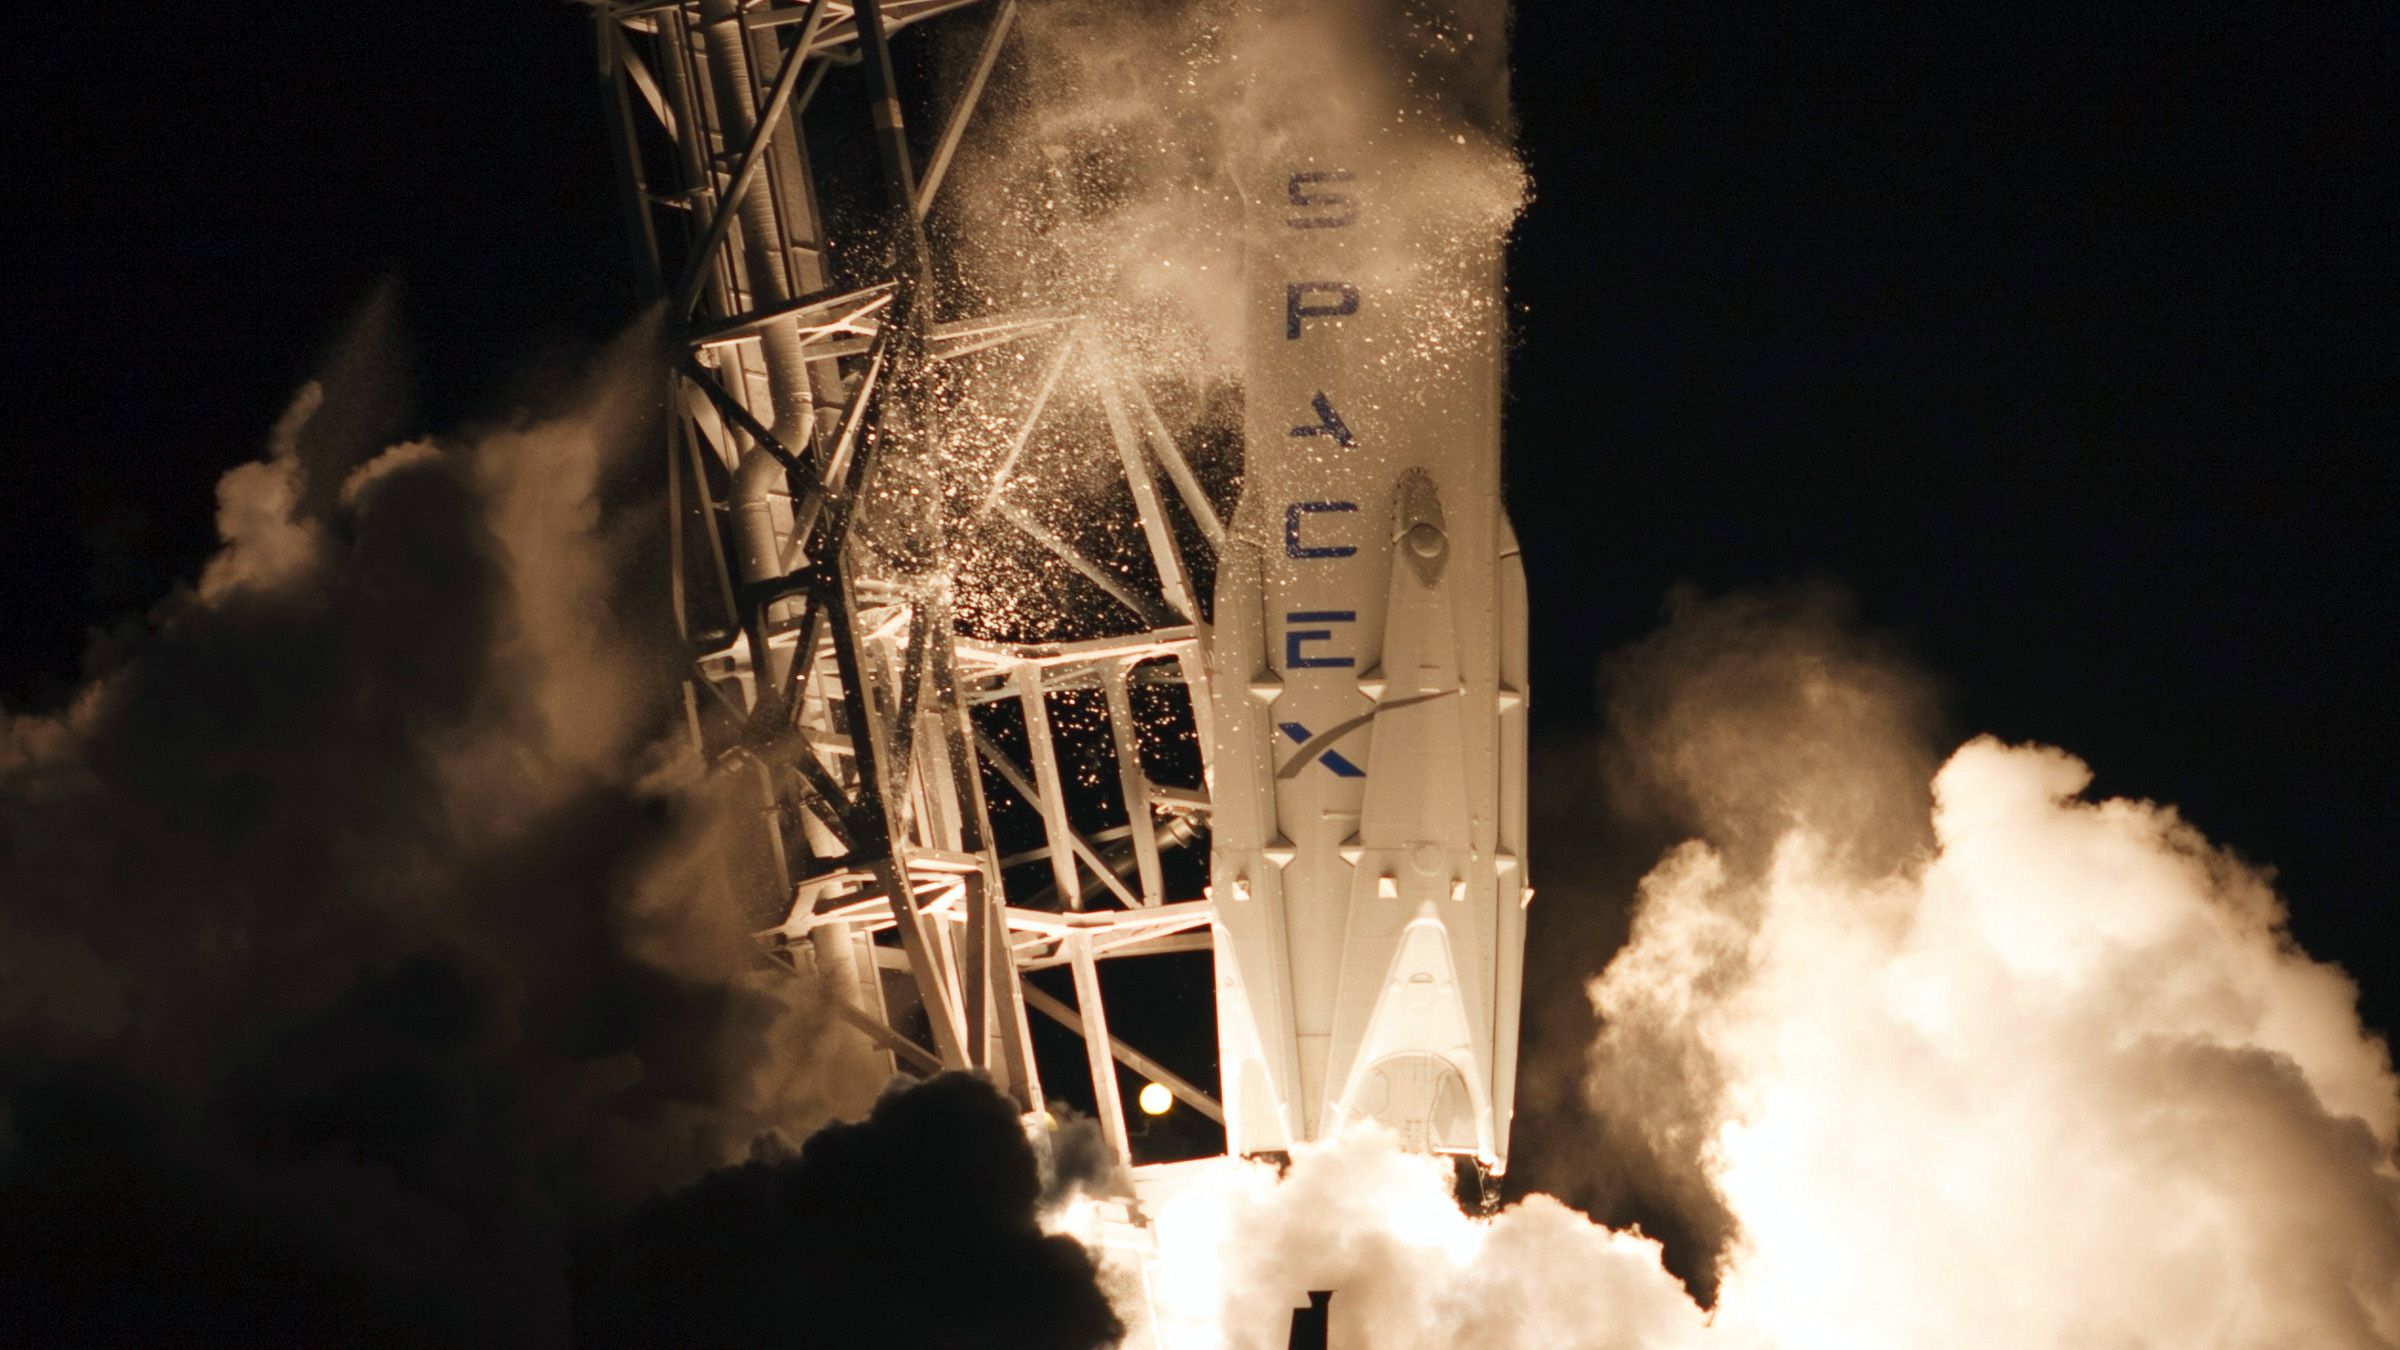 The unmanned Falcon 9 rocket launched by SpaceX on a cargo resupply service mission to the International Space Station (ISS), lifts off from the Cape Canaveral Air Force Station in Cape Canaveral, Florida January 10, 2015. An unmanned Space Exploration Technologies mission blasted off on Saturday carrying cargo for the ISS, but efforts to reland the rocket on a sea platform failed, the firm said. The Dragon cargo capsule itself was successfully launched into space and is expected to dock with the space station on Monday.